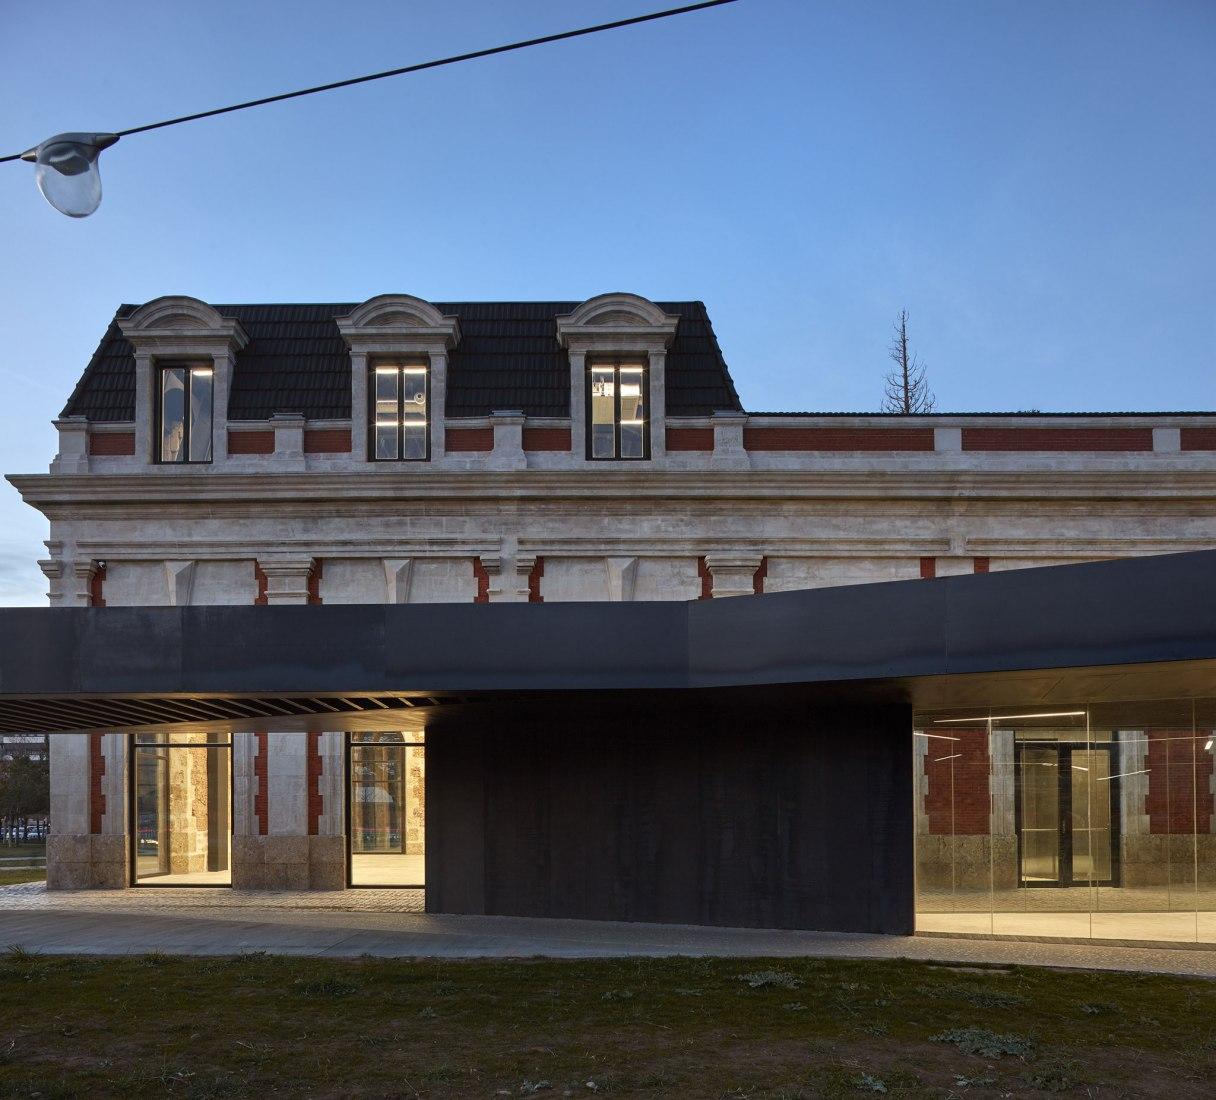 Renovation of the old railway station of Burgos by Contell-Martínez Arquitectos. Photography © Mariela Apollonio